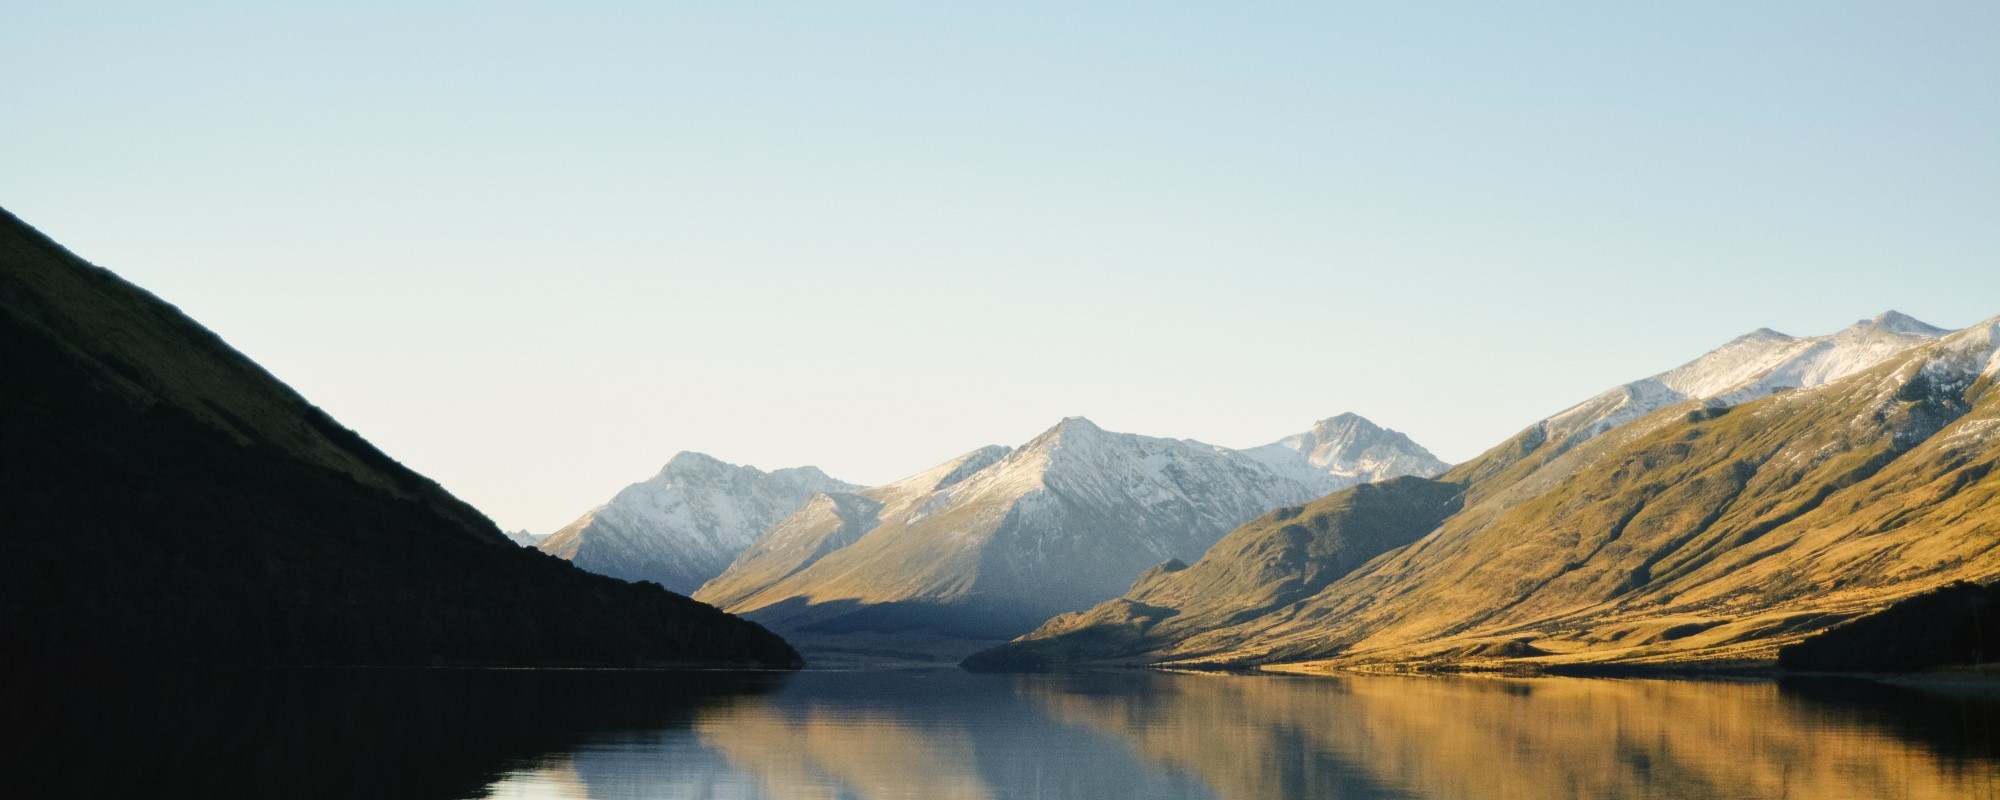 New Zealand mountains and lake